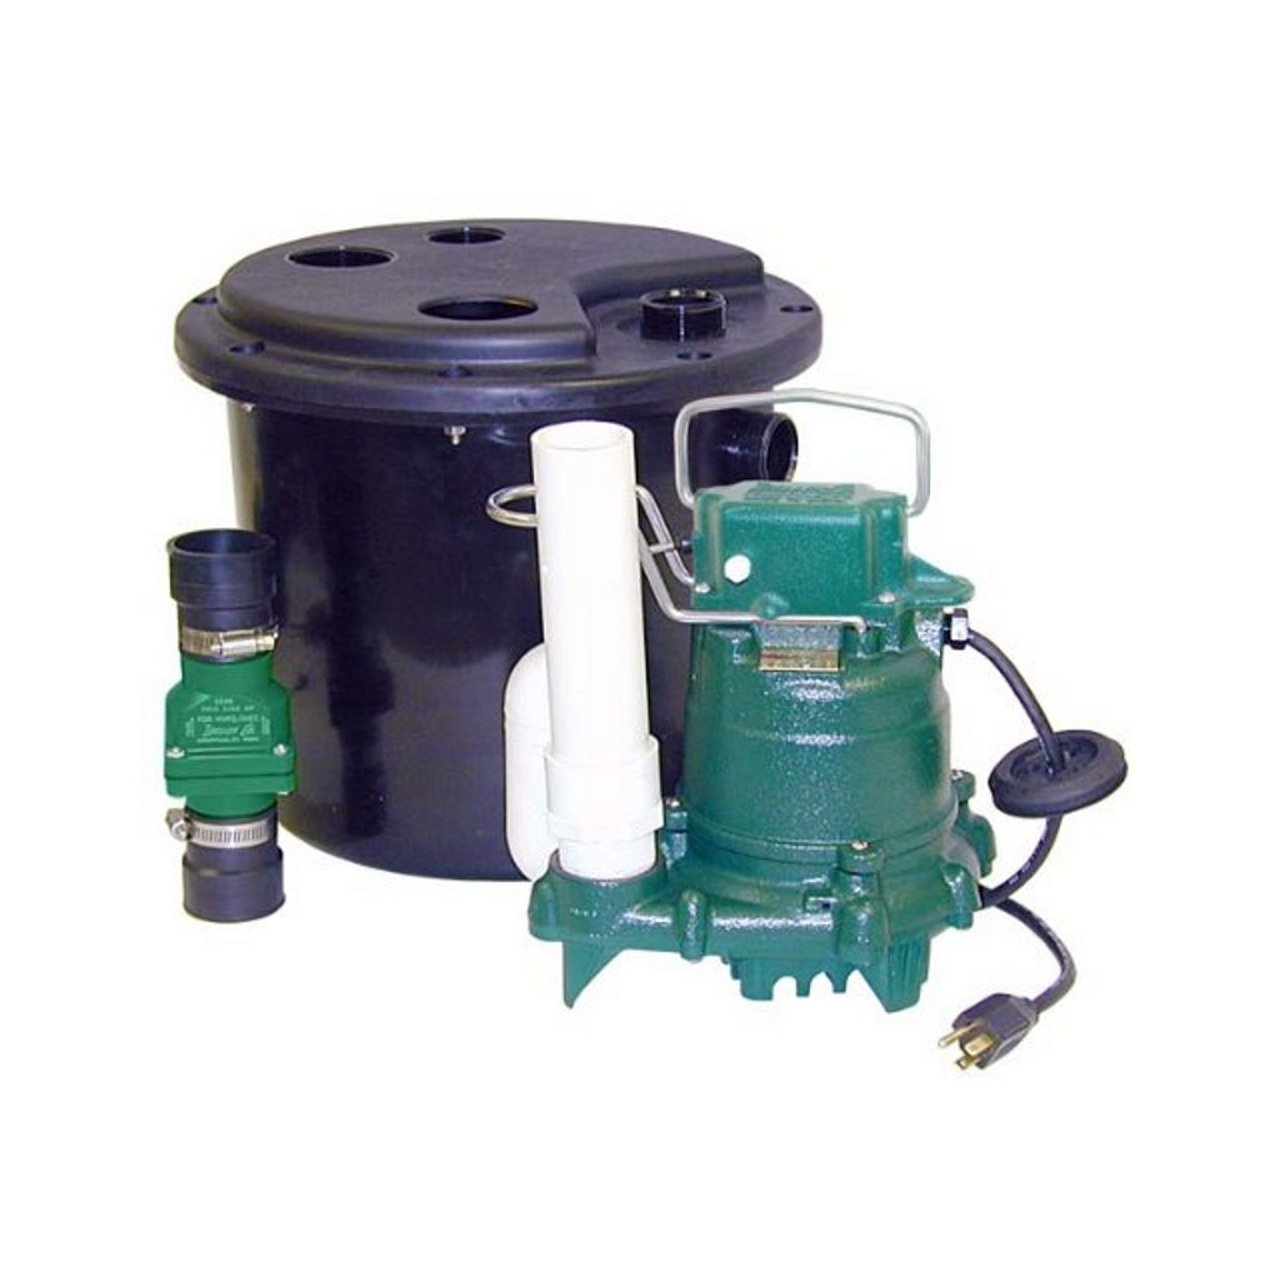 Zoeller 105-0001 Sump Pump 12.50 x 14.50 x 14.50 inches 19 Pound